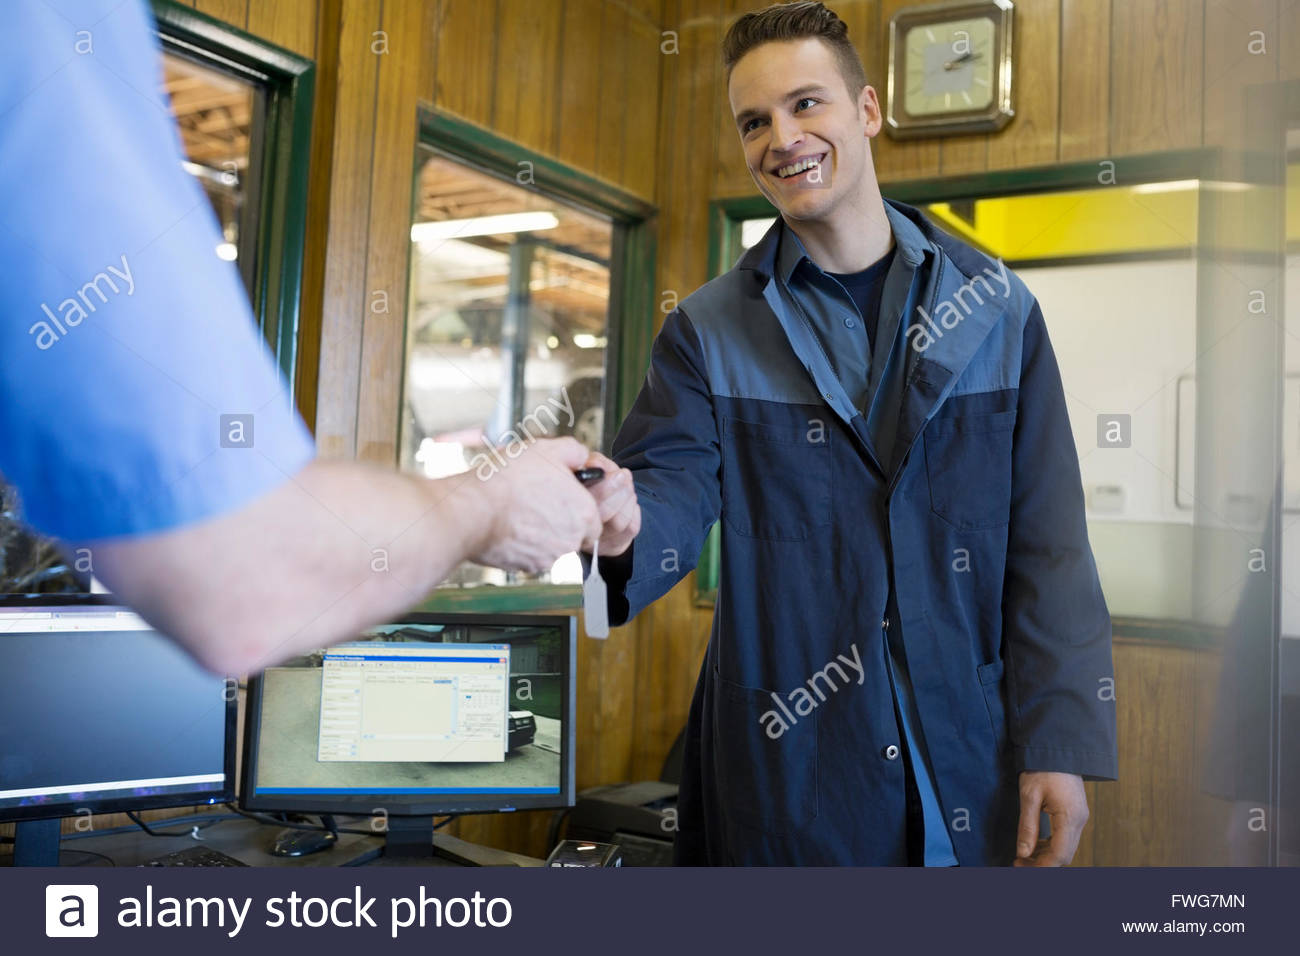 Mechanics exchanging keys auto shop office - Stock Image